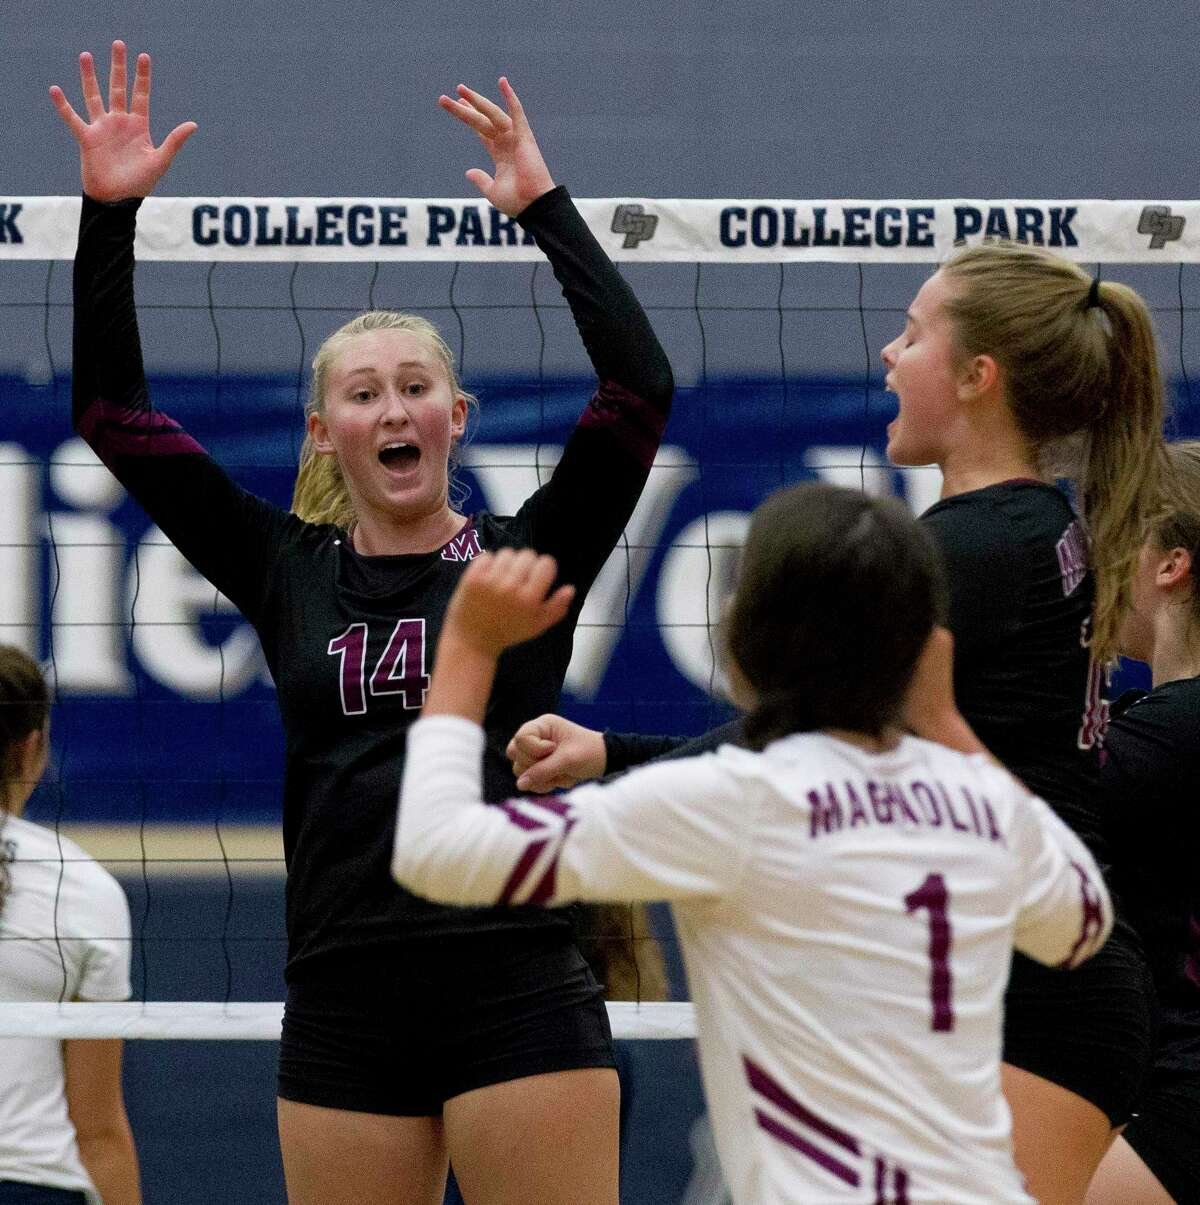 Magnolia's Ellie Anderson (14) reacts after scoring a point during the first set of a non-district high school volleyball match at College Park High School on Saturday, Aug. 25, 2018, in The Woodlands